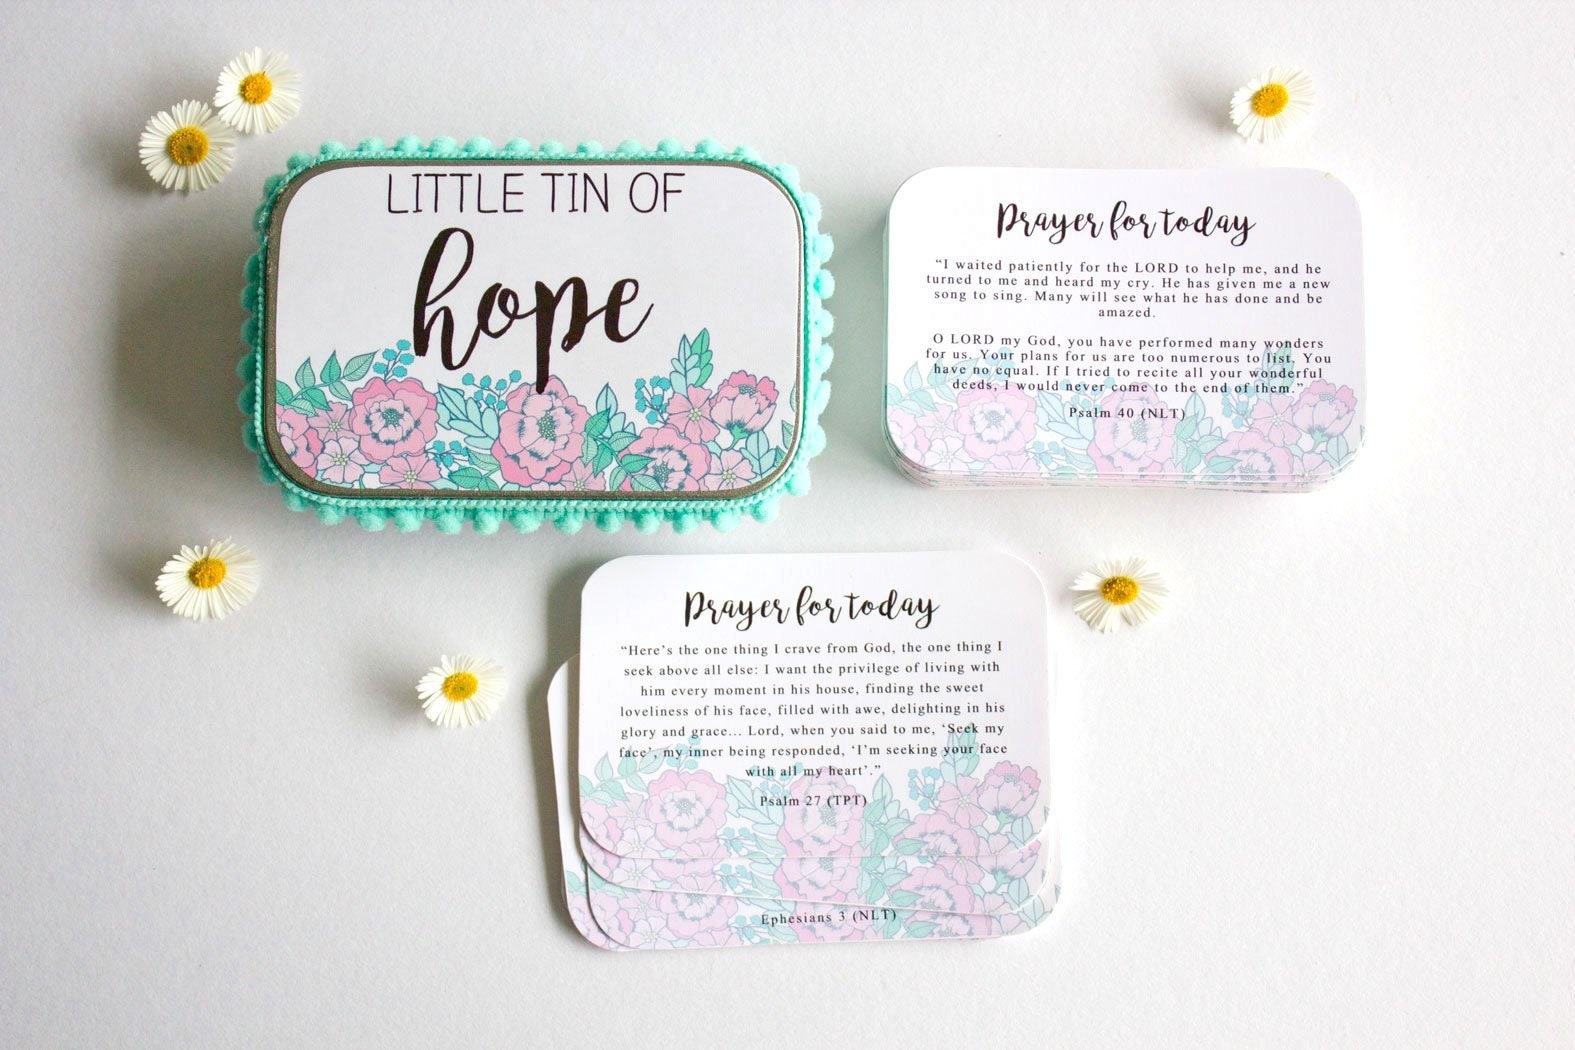 Bible Verse Cards, Scripture Cards, Prayer, Tin, Christian Gift,  Encouragement, Inspirational Quote Cards, Floral Design,